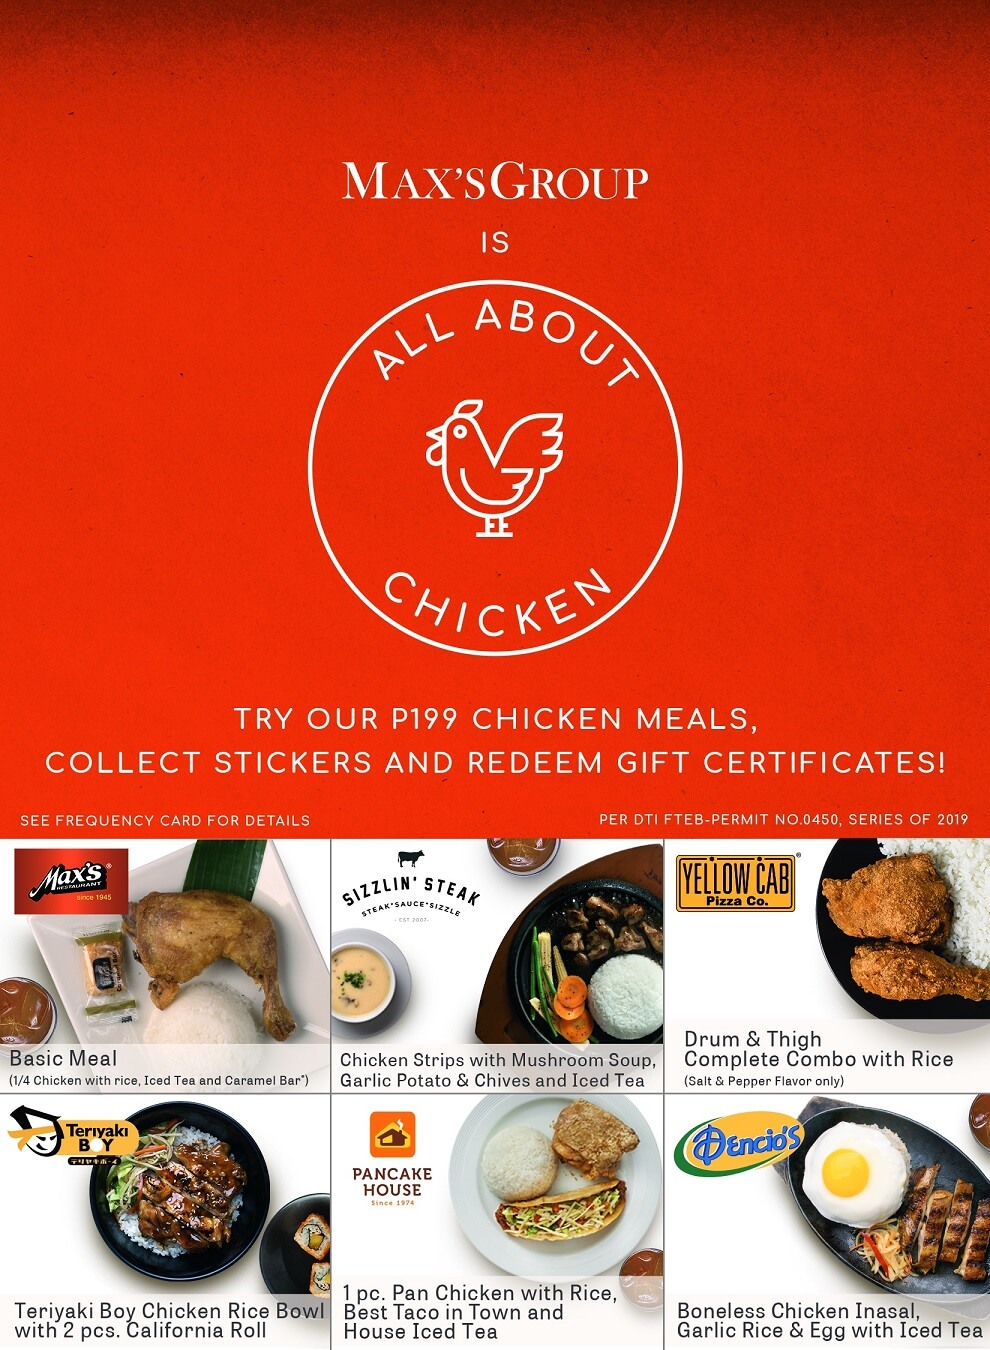 From february 15 to april 15 chicken lovers can order their favorite chicken meals worth php199 each in exchange for stickers for their all about chicken